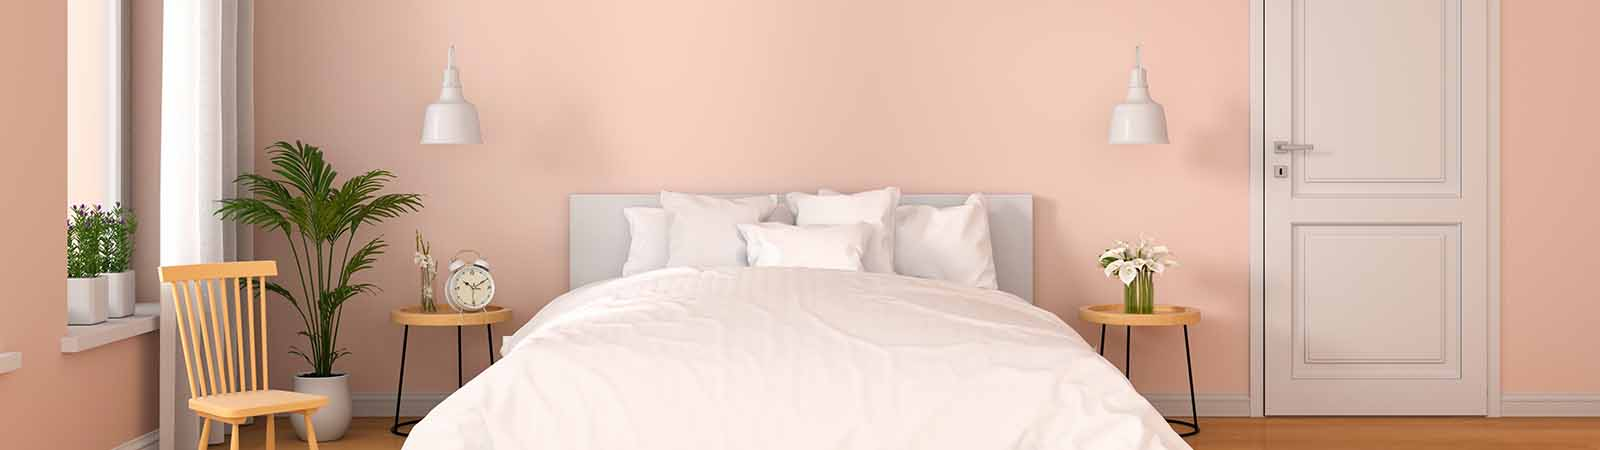 AllergyStore.com offers the the widest selection of allergy bedding products available.